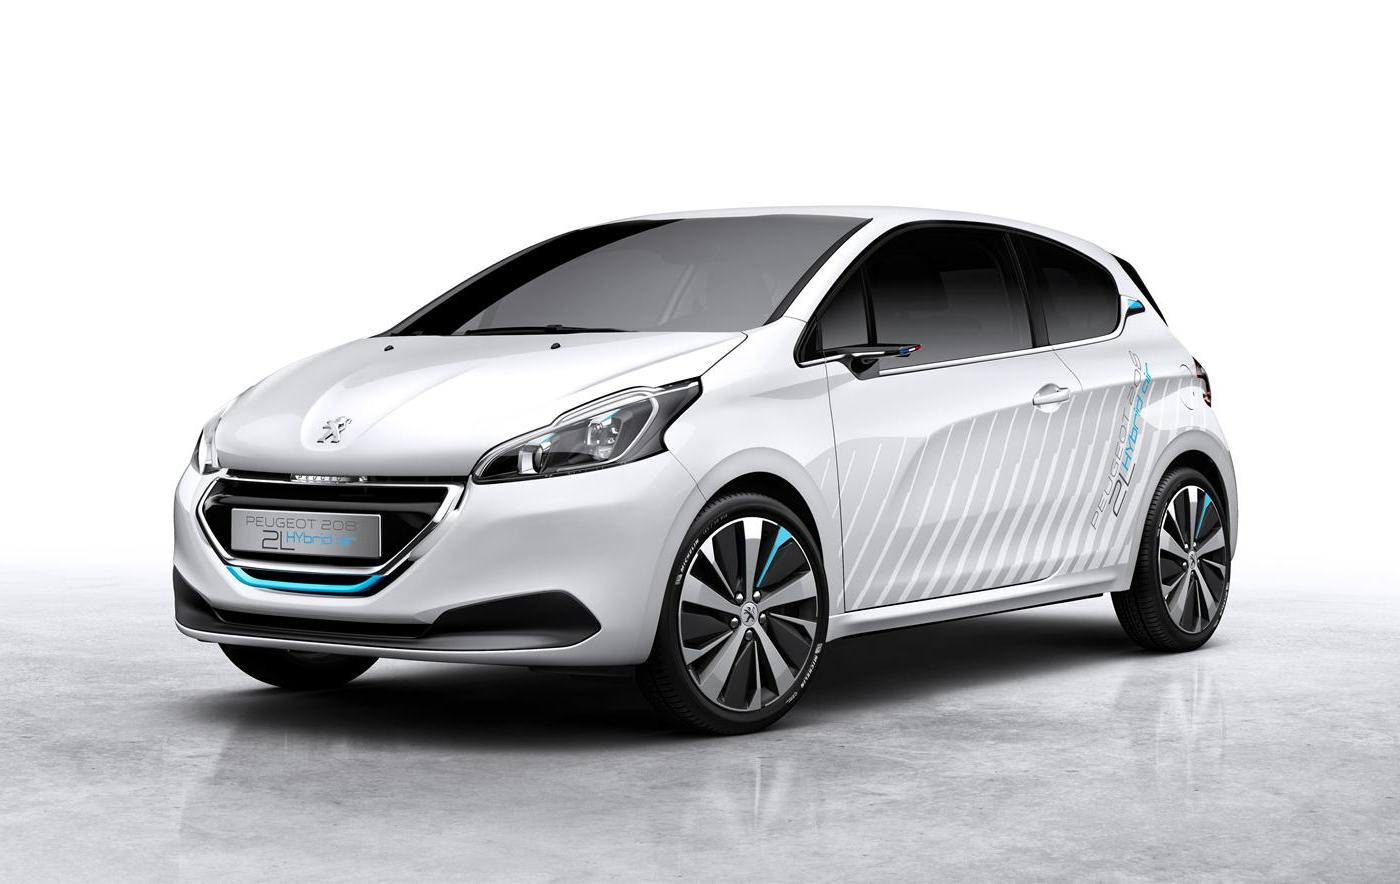 2016 peugeot 208 pictures information and specs auto. Black Bedroom Furniture Sets. Home Design Ideas